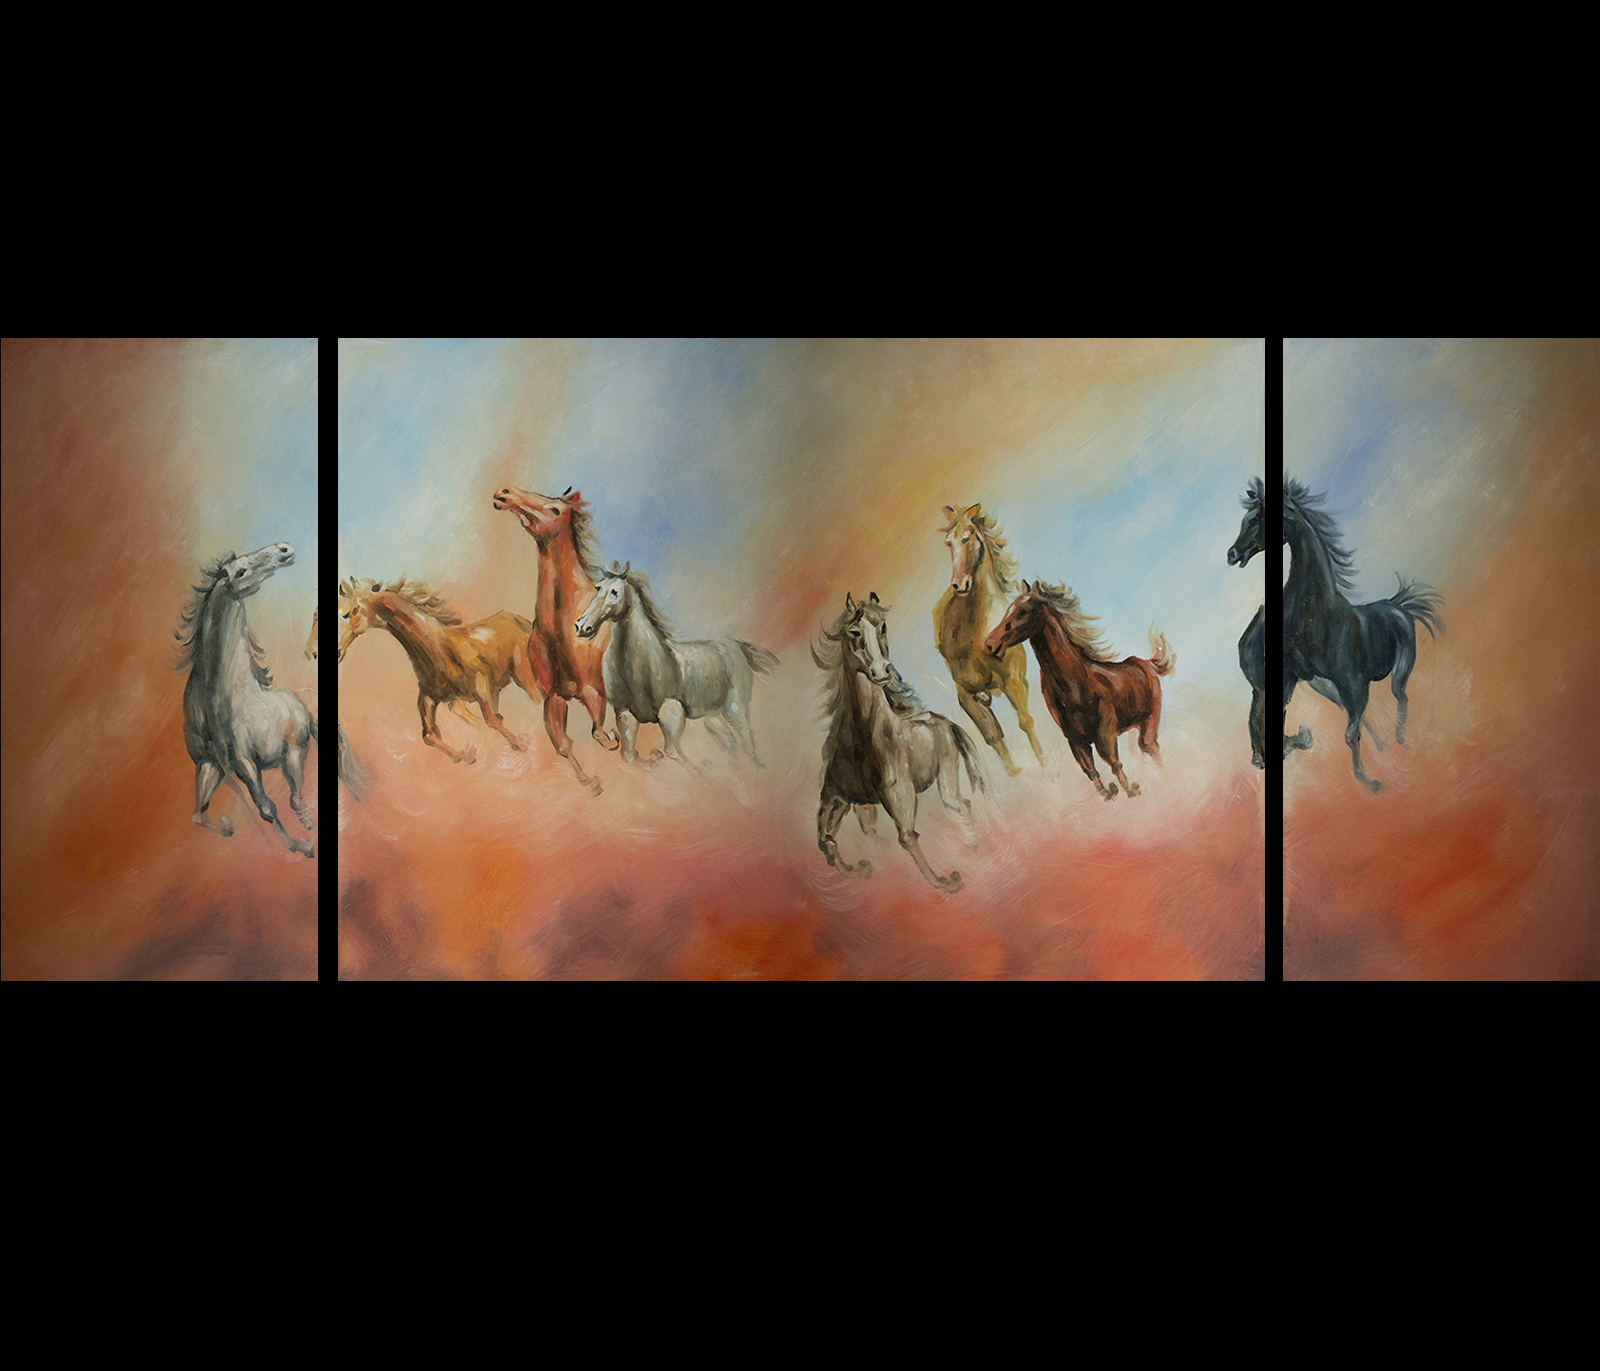 Feng Shui Art For Office For Horse Artwork Canvas Prints Contemporary Art Modern Wall Dcor